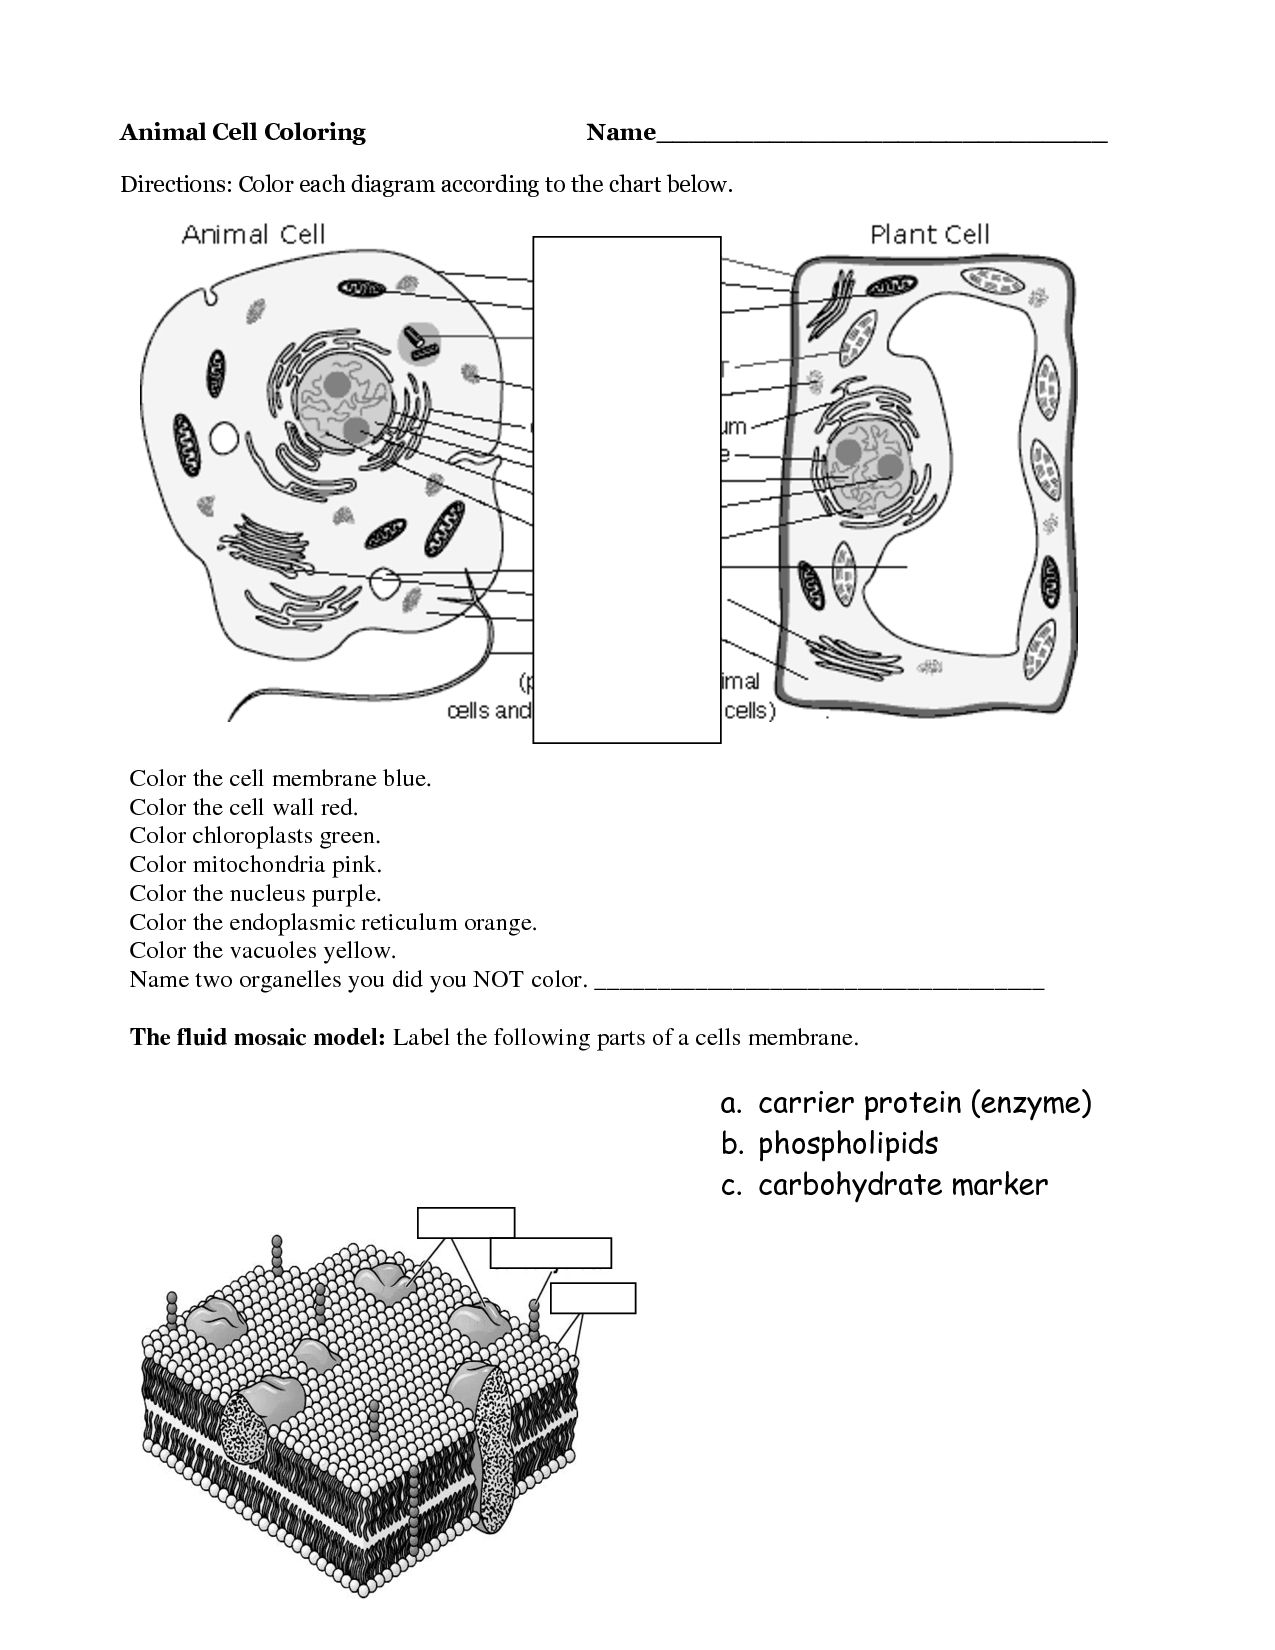 animal cell coloring diagram how to create process flow page az pages